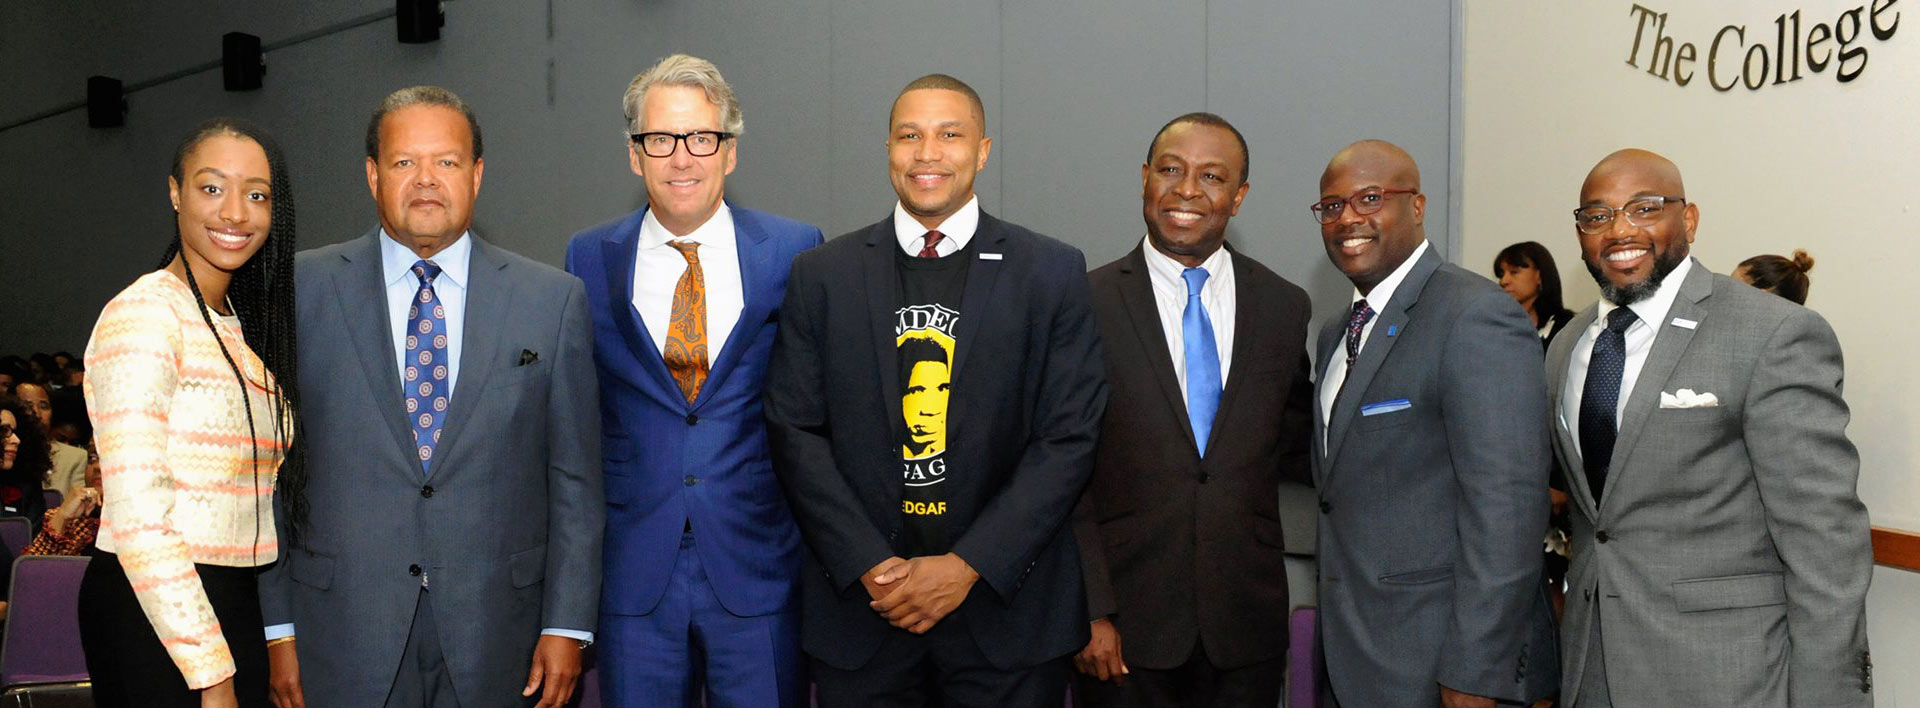 CUNY Black Mail Initiative (BMI) including Medgar Evers President Rudy Crew (second from l) and CUNY Chancellor James B. Milliken (third from left)